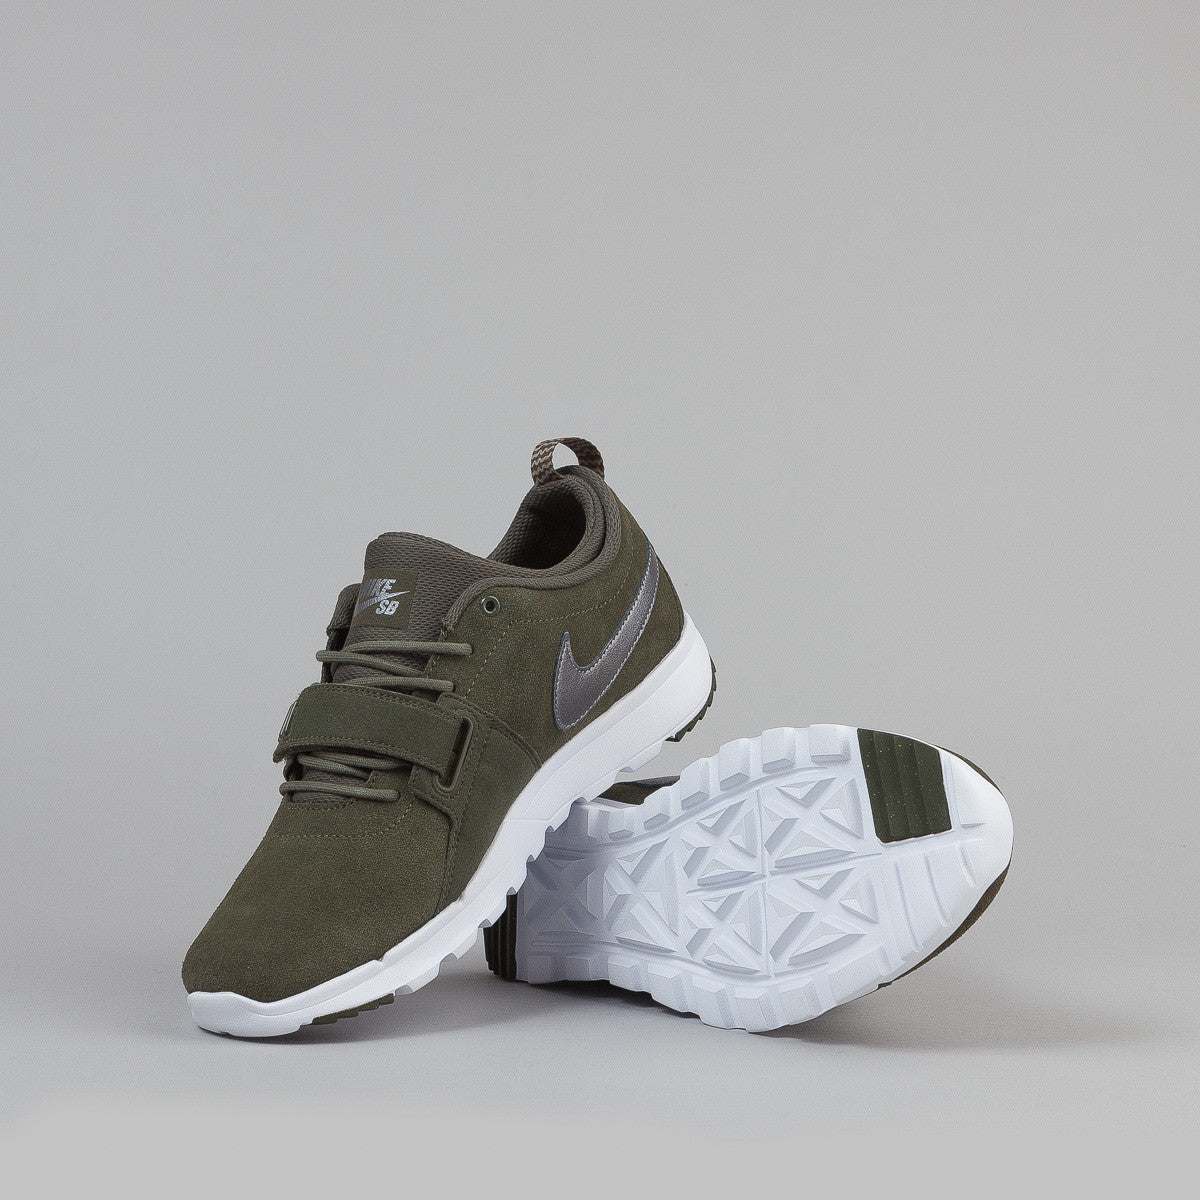 Nike SB Trainerendor Shoes - Cargo Khaki / Metallic Cool Grey - White - White